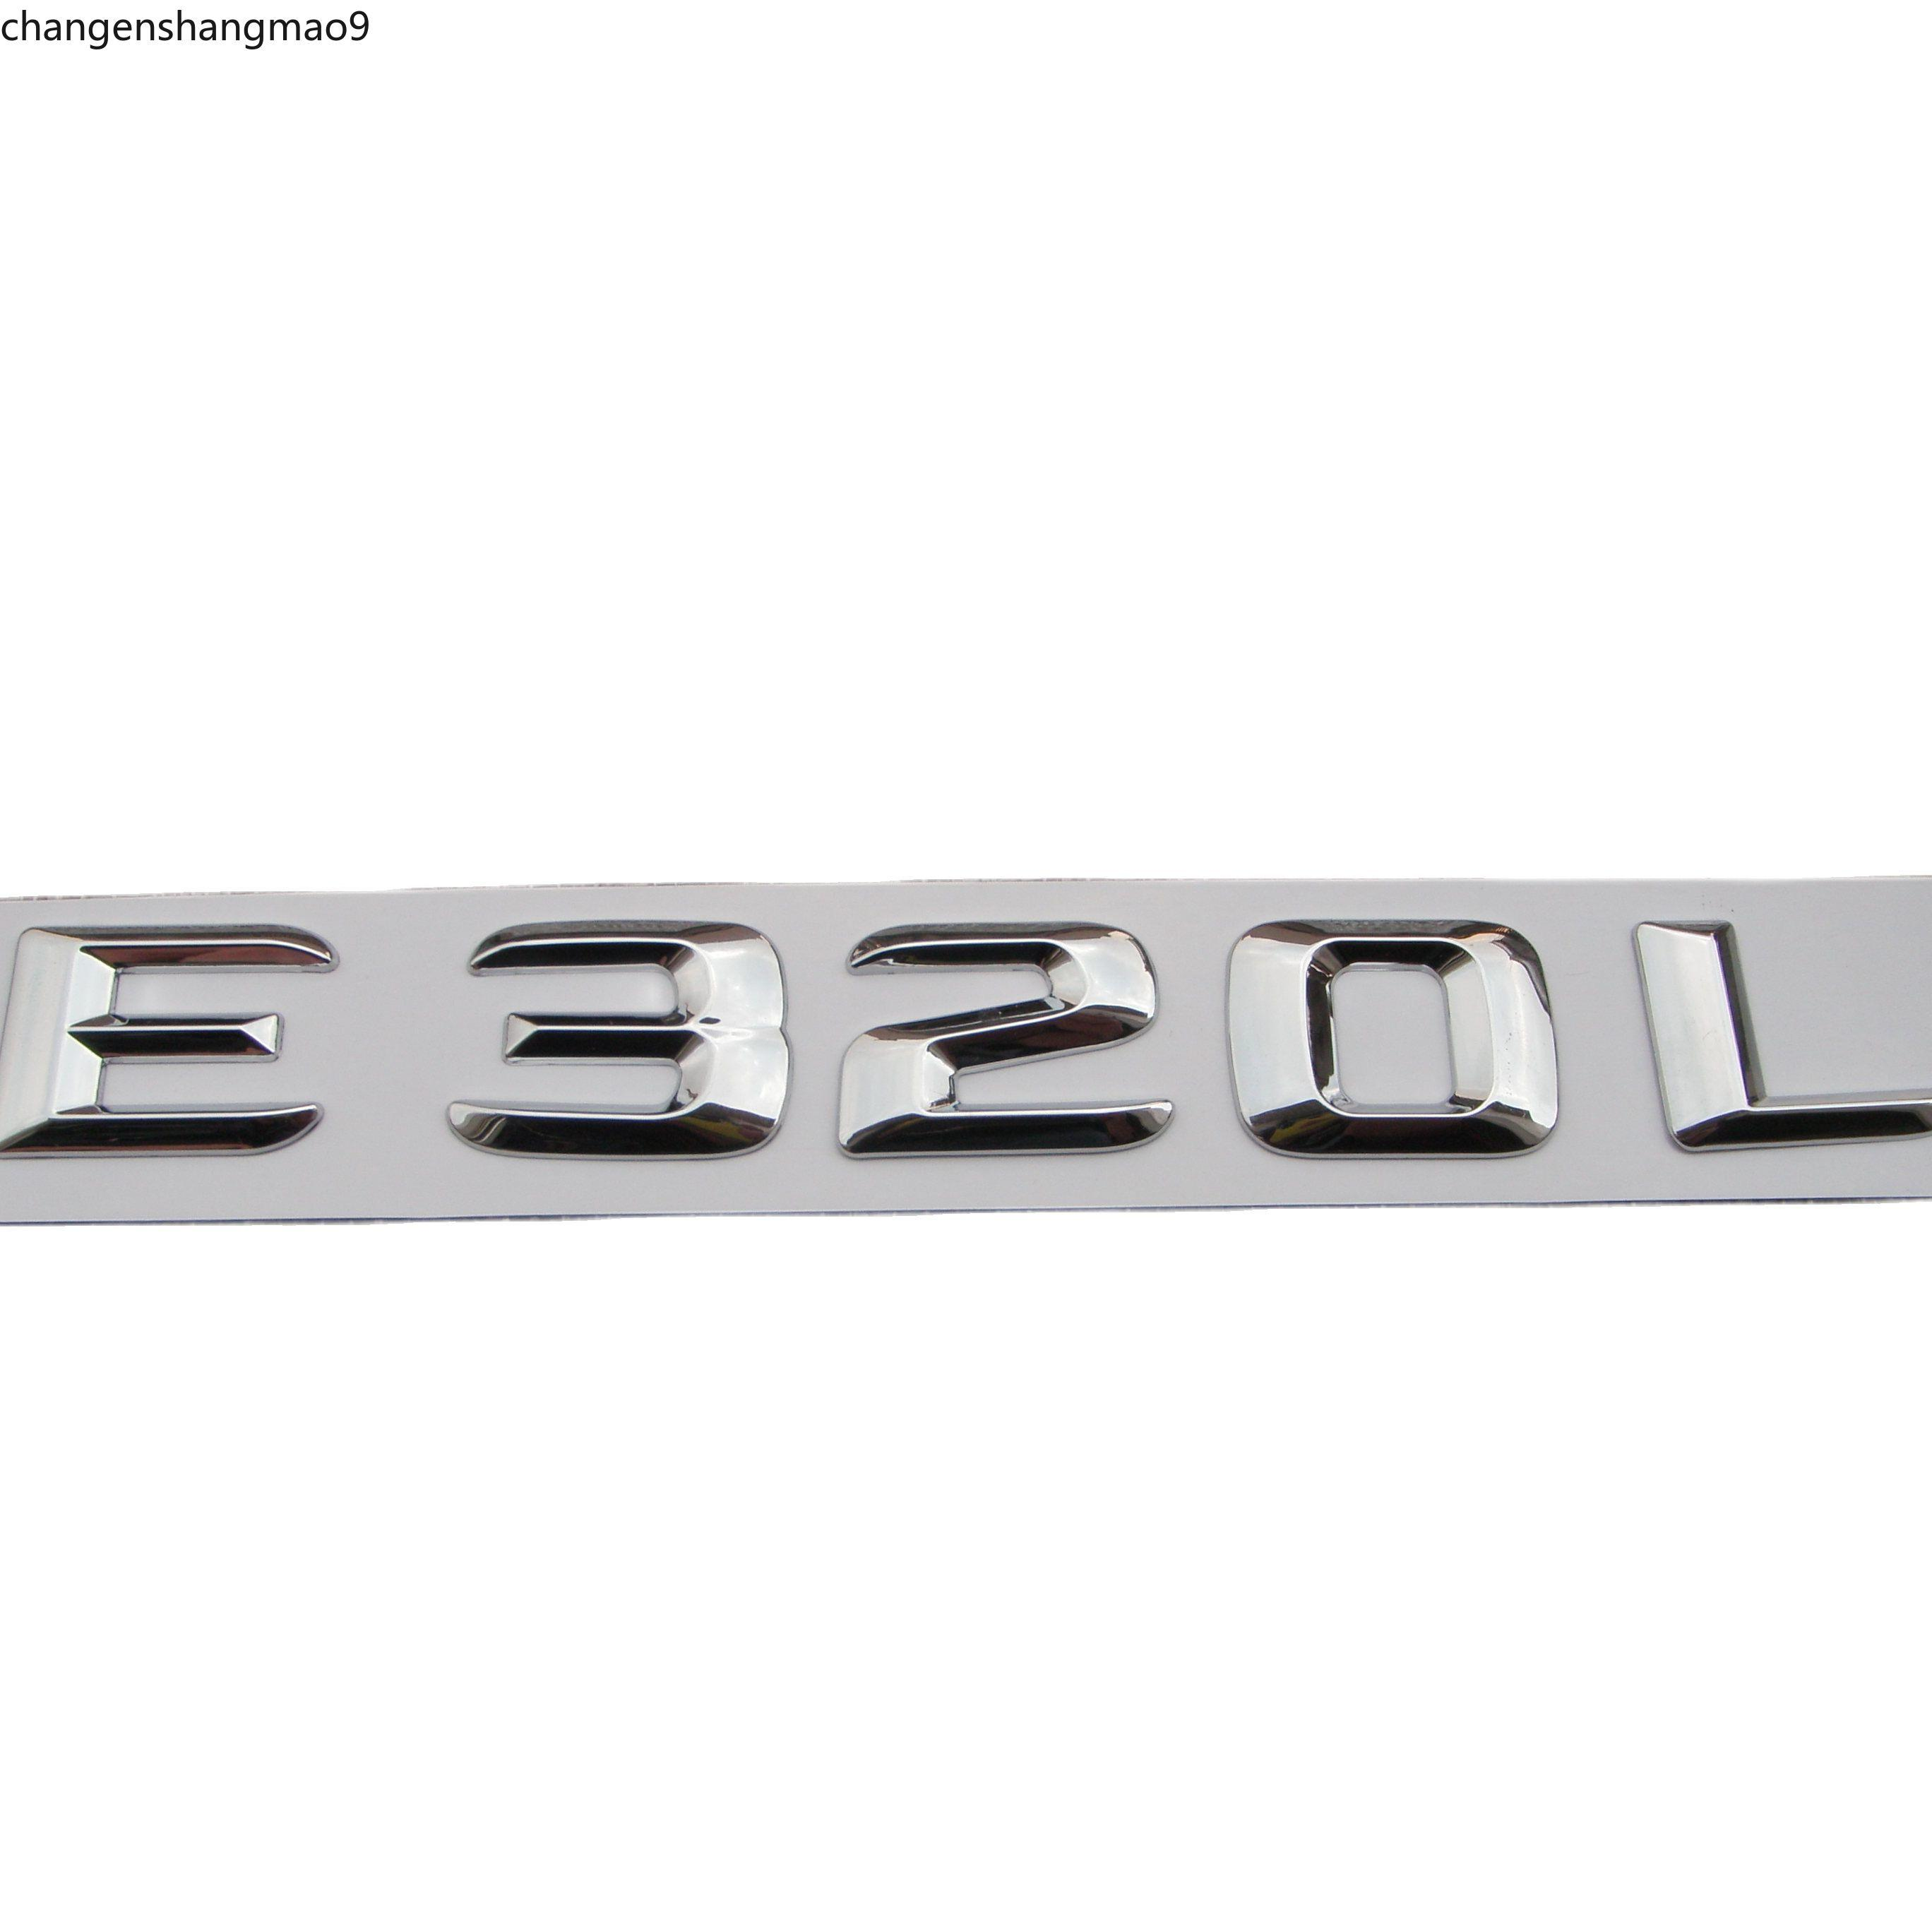 Chrome ABS Trunk Rear Letters Number Badge Emblem Decal Sticker for Mercedes Benz E Class E320L